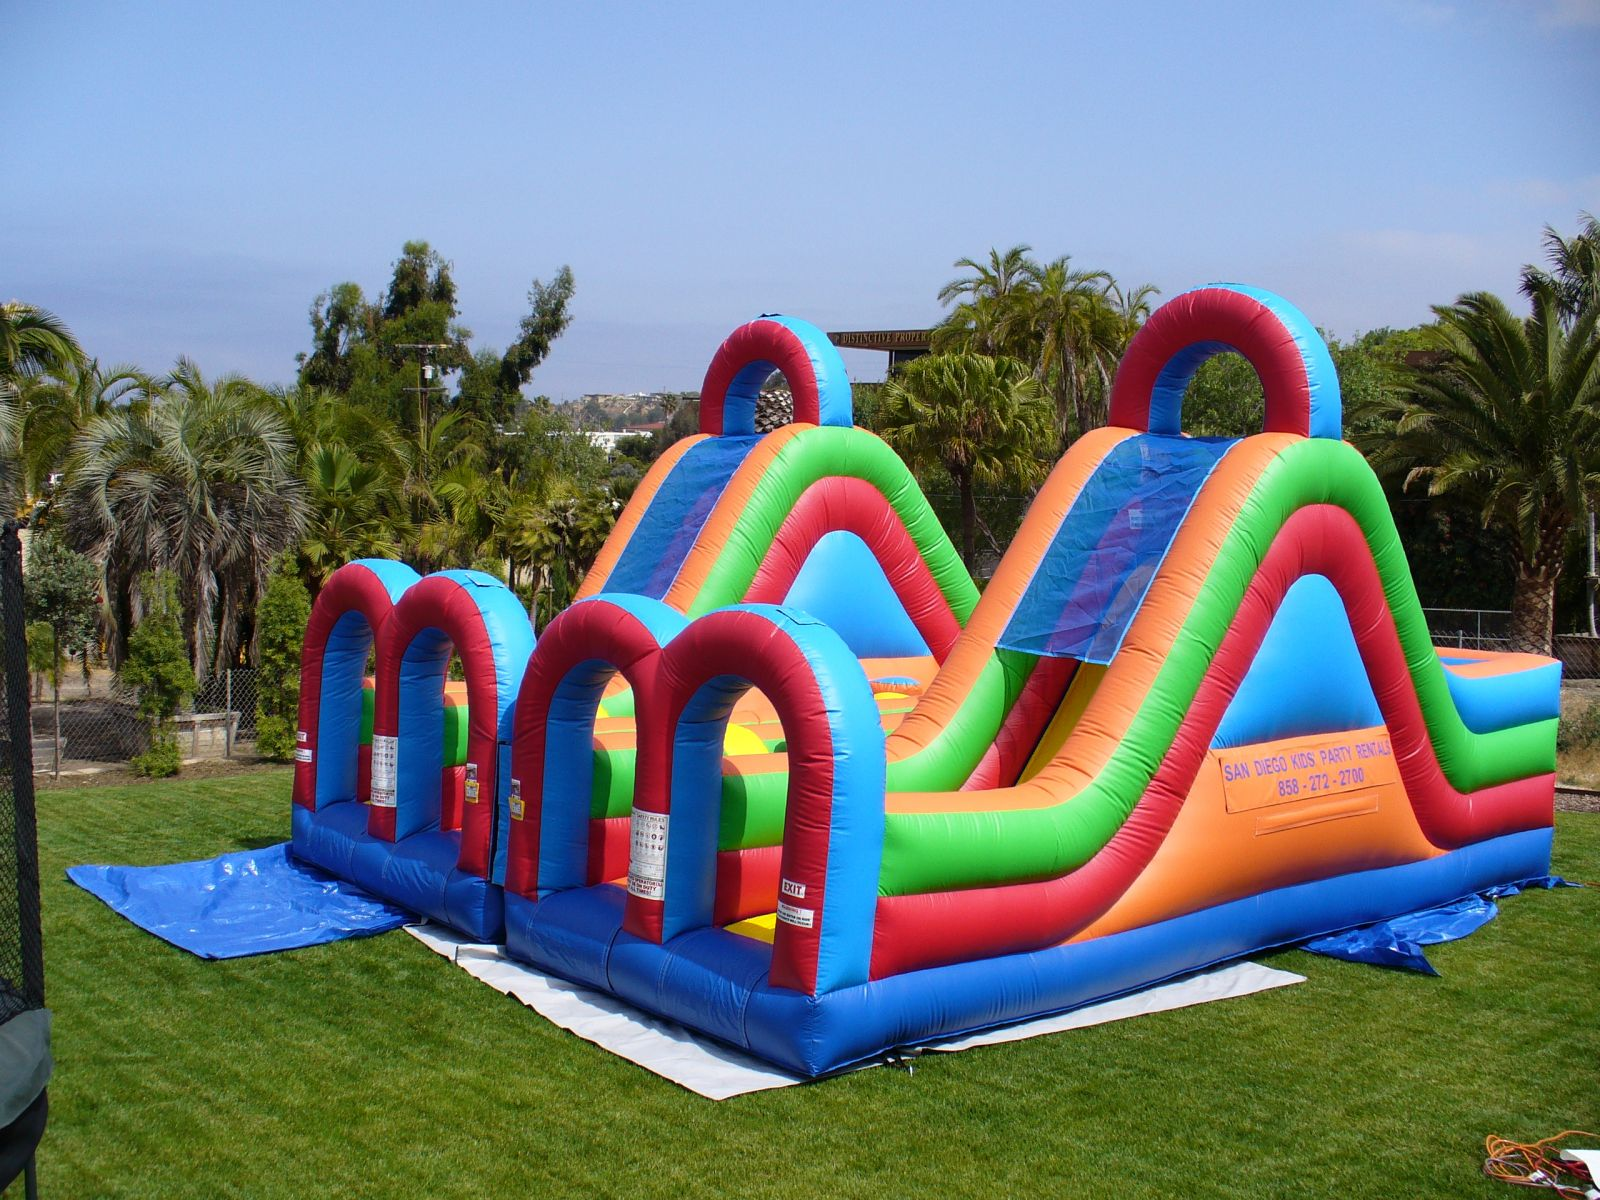 Dual lane Turbo Rush Inflatable Obstacle Course